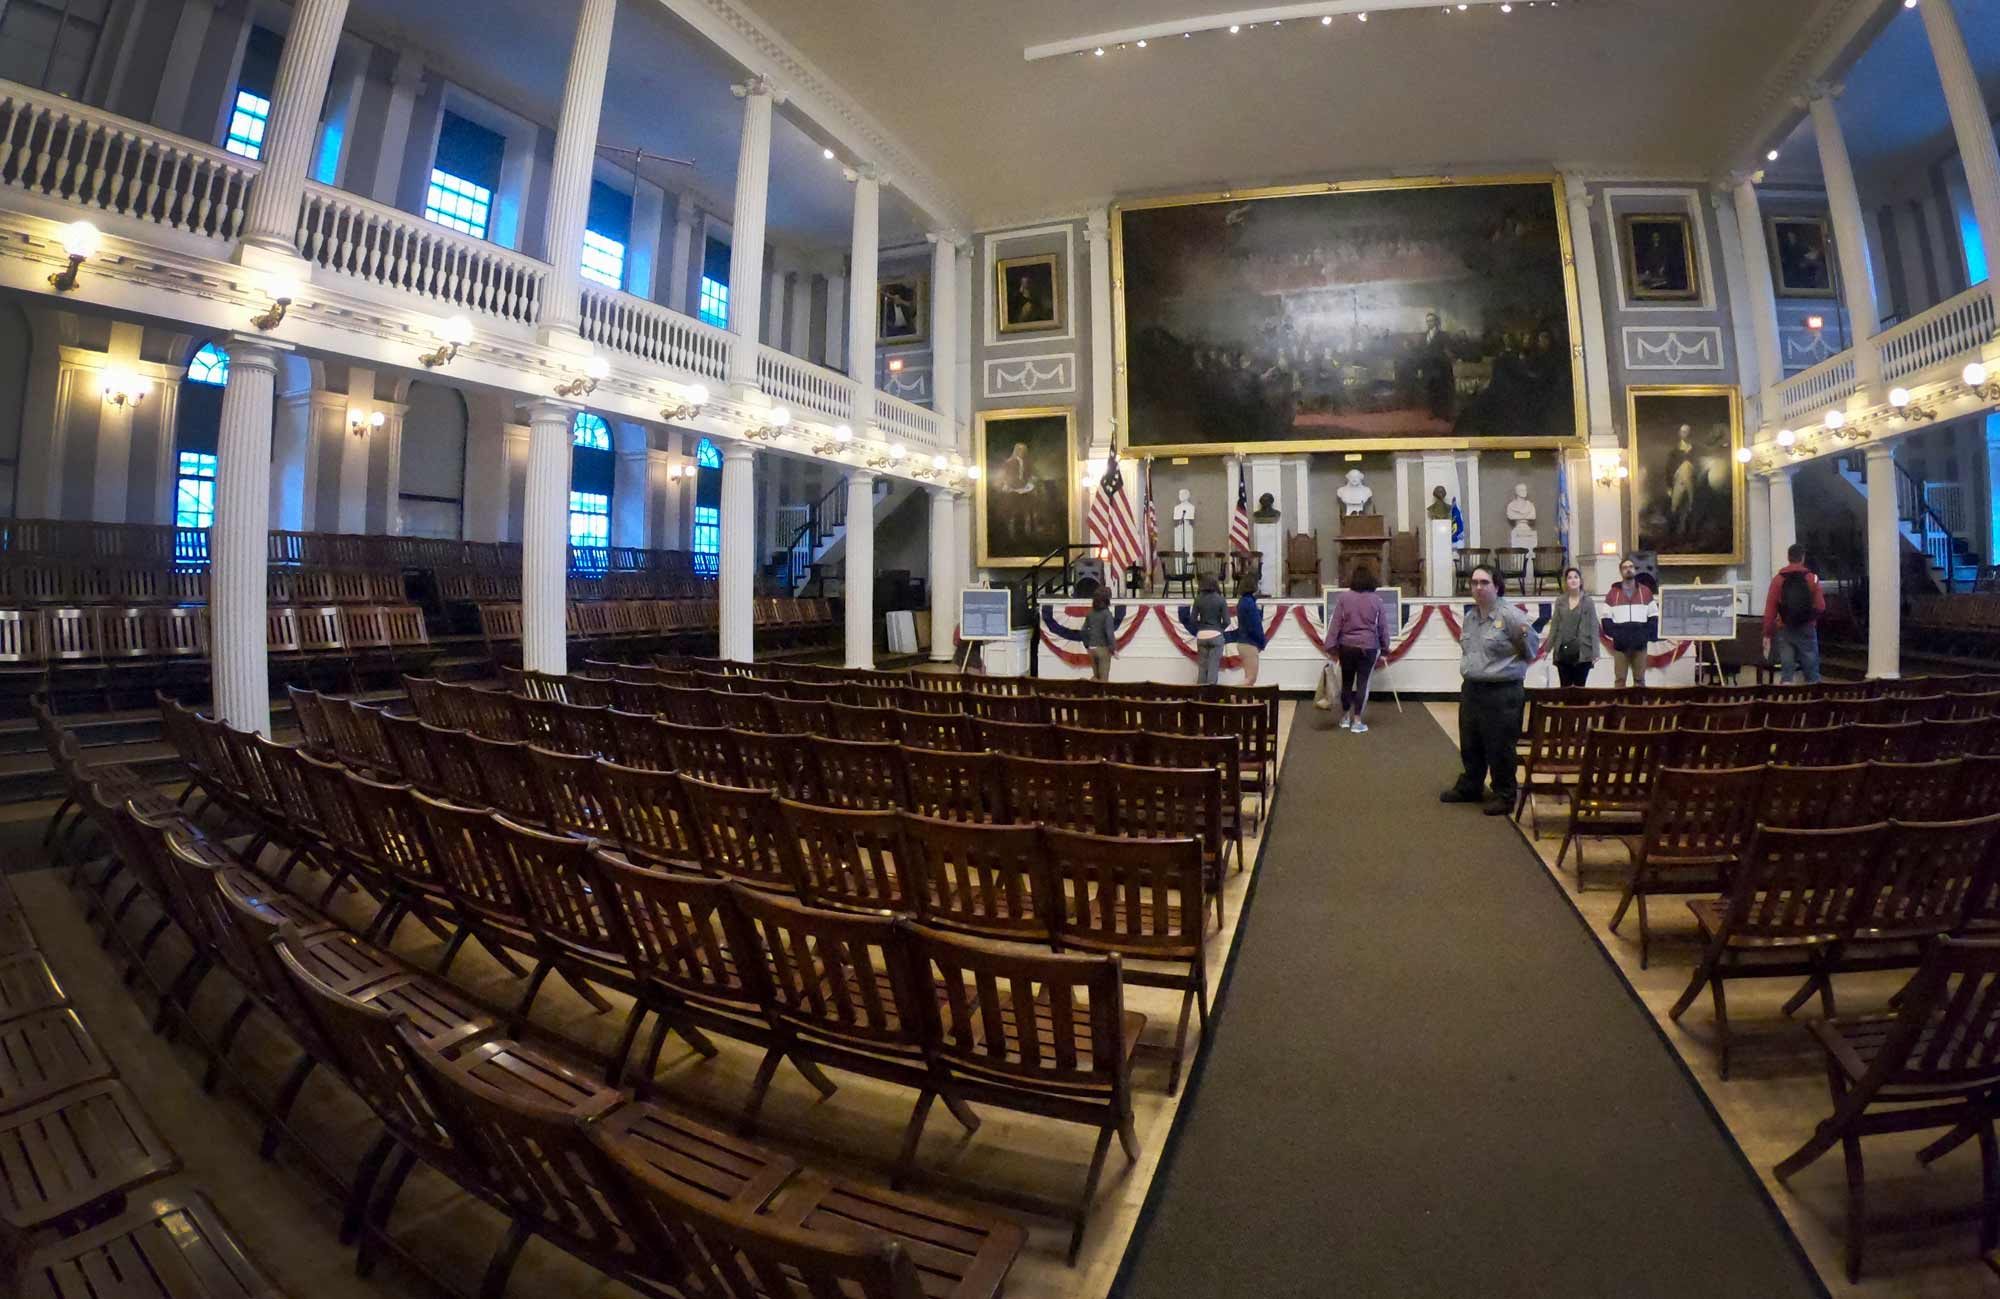 Interior view  Faneuil Hall in Boston National Historical Park on Freedom Trail in Boston, Massachusetts